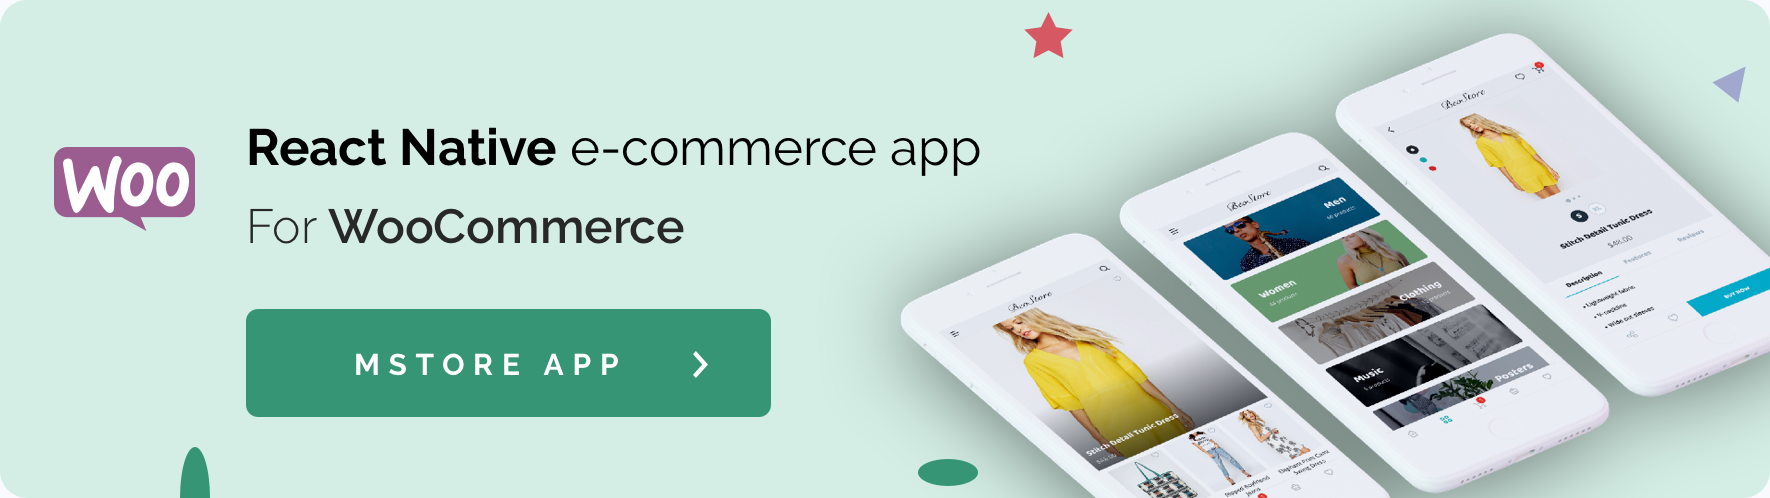 Fluxstore Multi Vendor - Flutter E-commerce Full App - 29